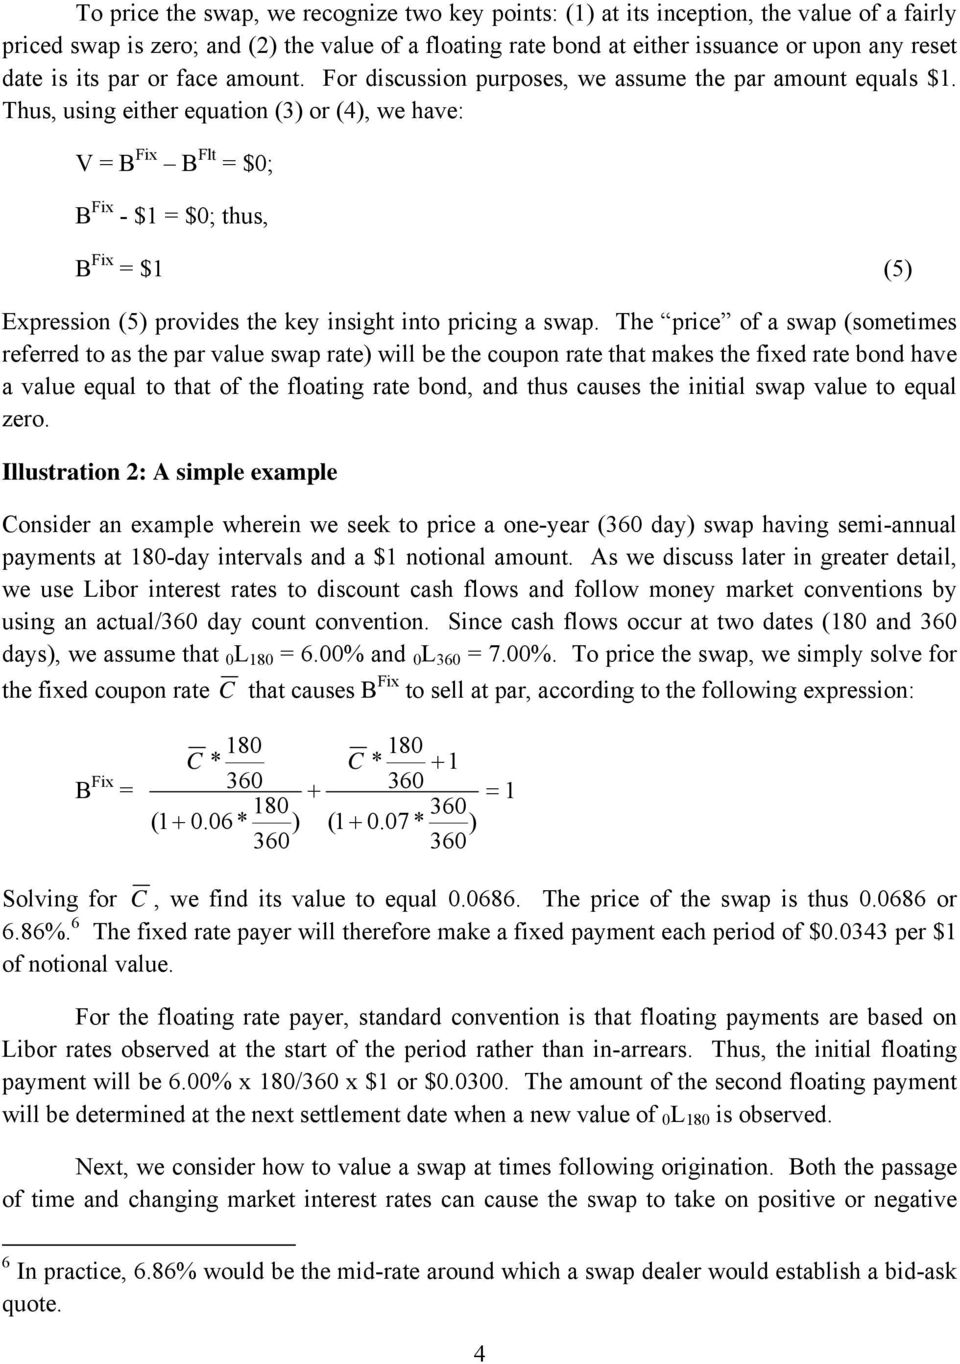 Thus, using either equation (3) or (4), we have: V = B Fix B Flt = $0; B Fix - $1 = $0; thus, B Fix = $1 (5) Expression (5) provides the key insight into pricing a swap.